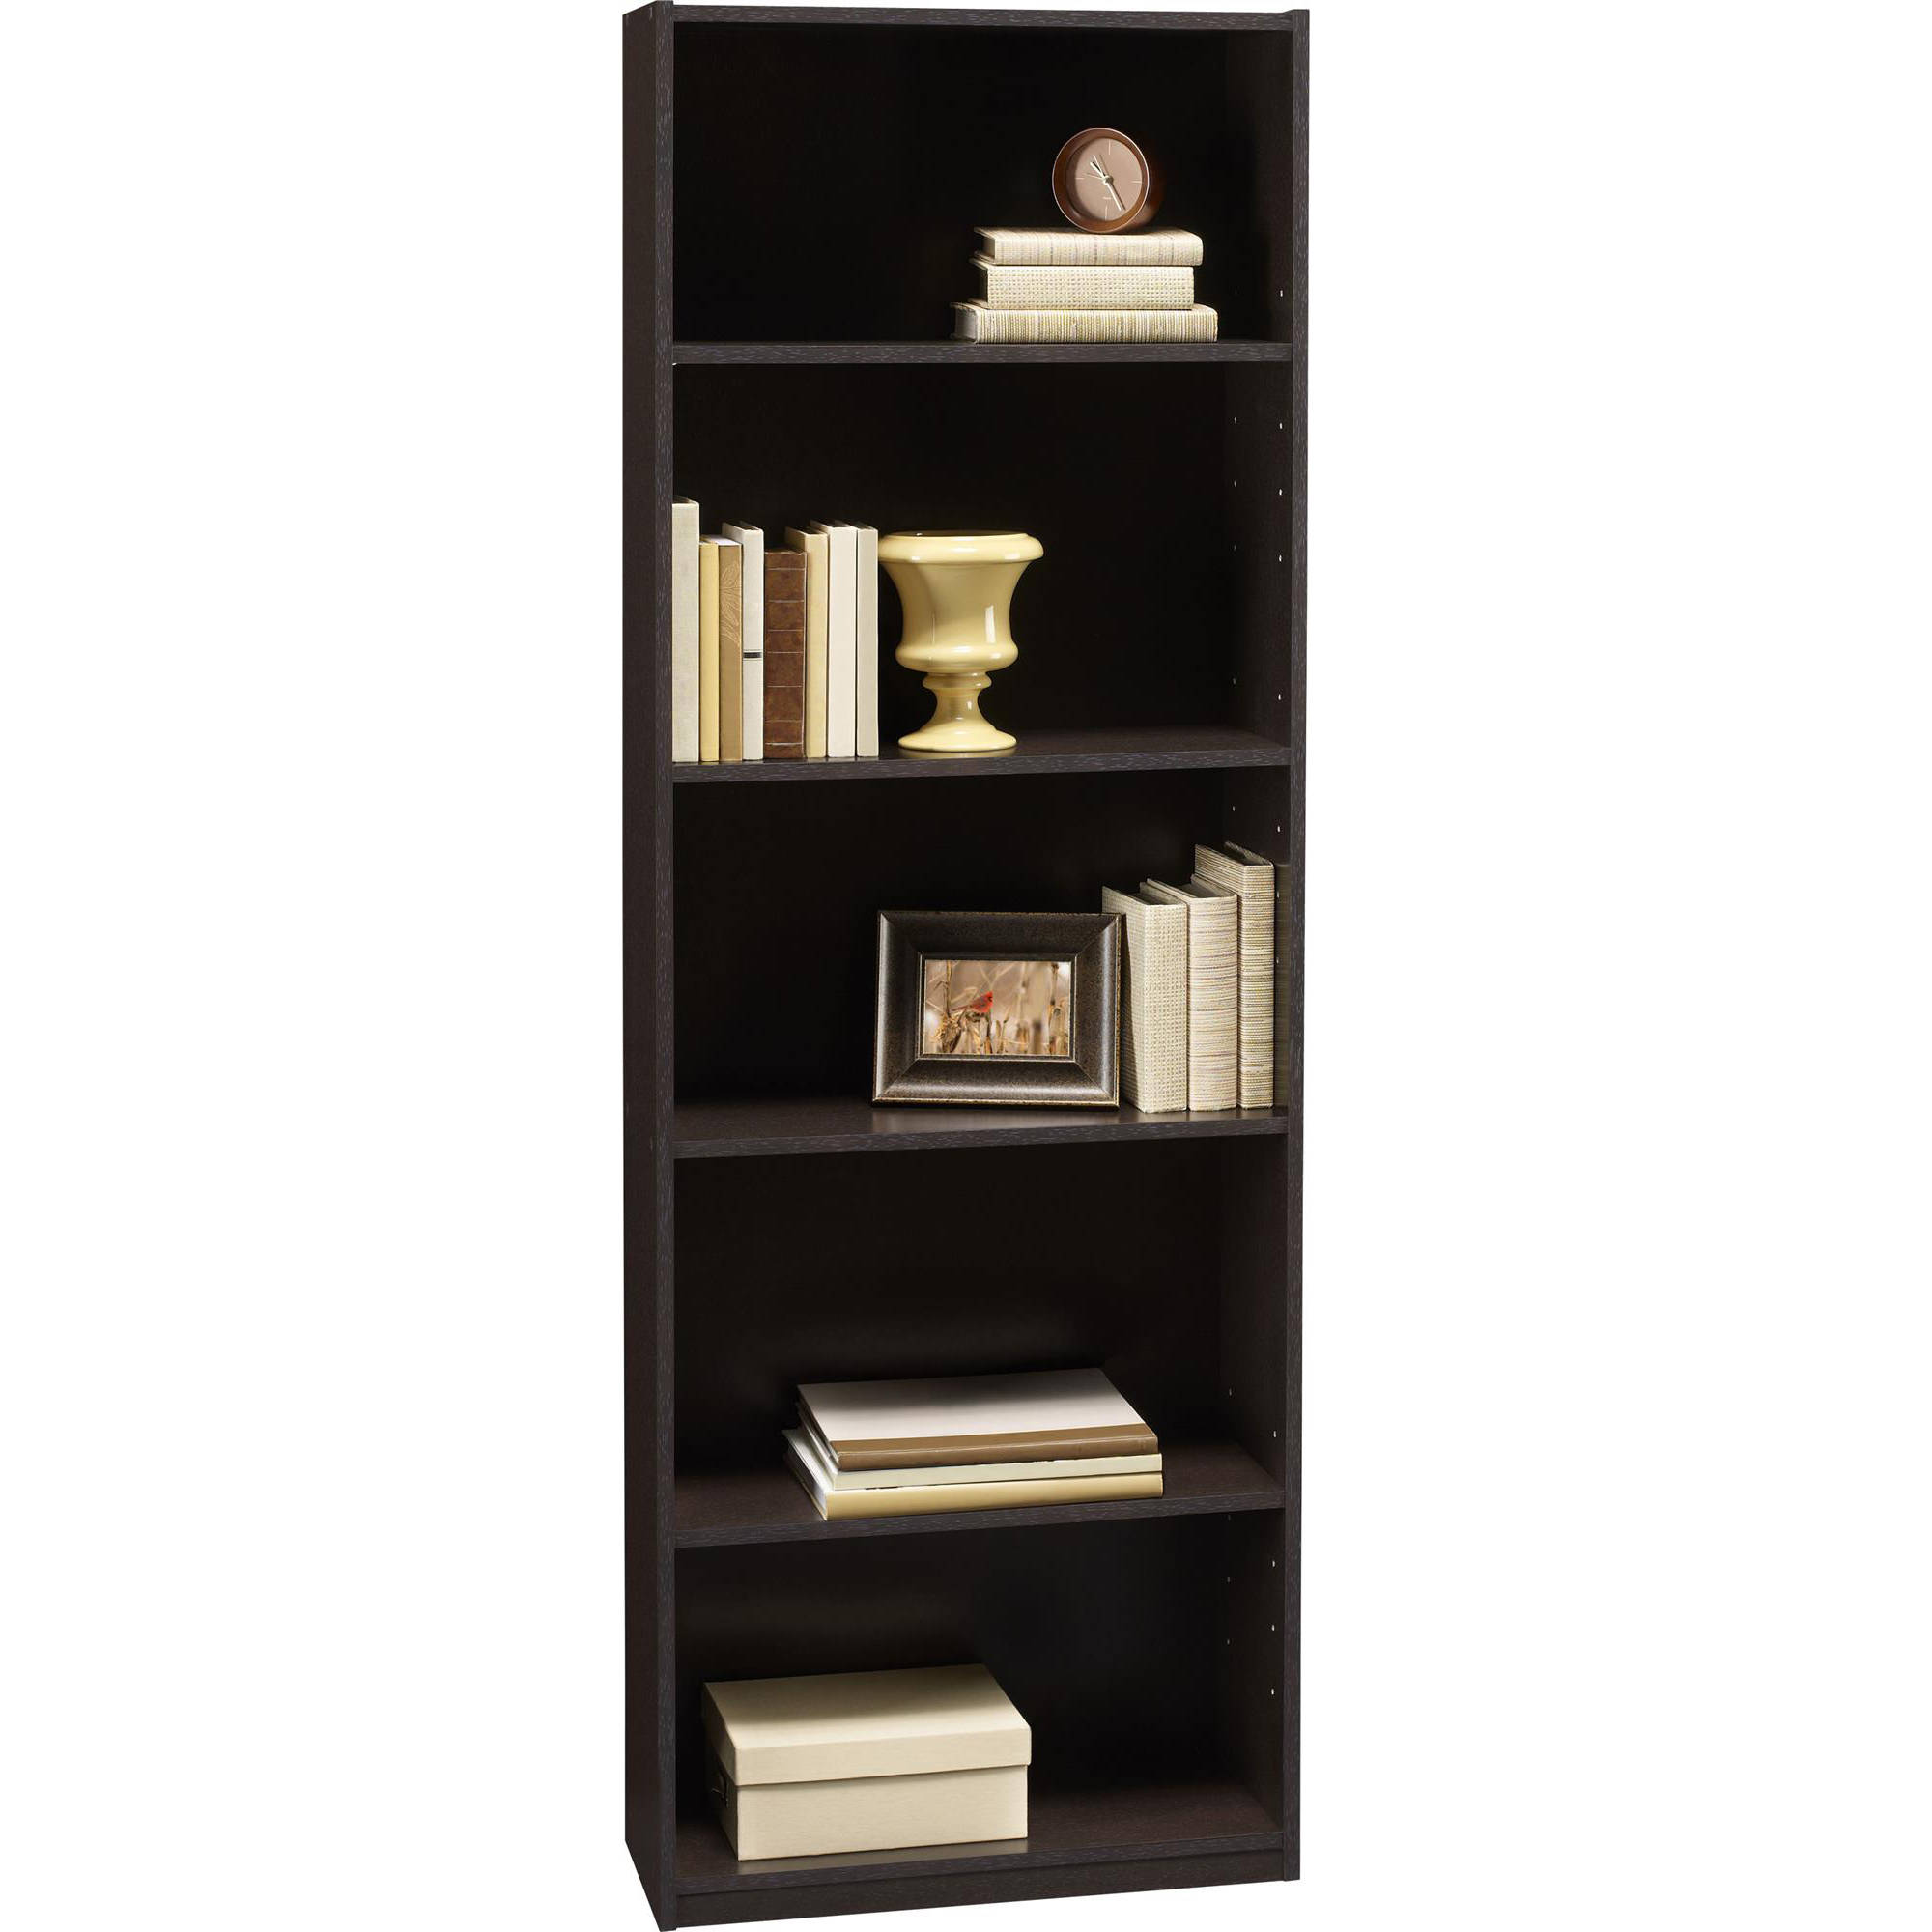 product cfm bookcases bookcase wood in wide veneer double dryoak concepts inch options doublewidewoodveneerbookcasecherry hayneedle